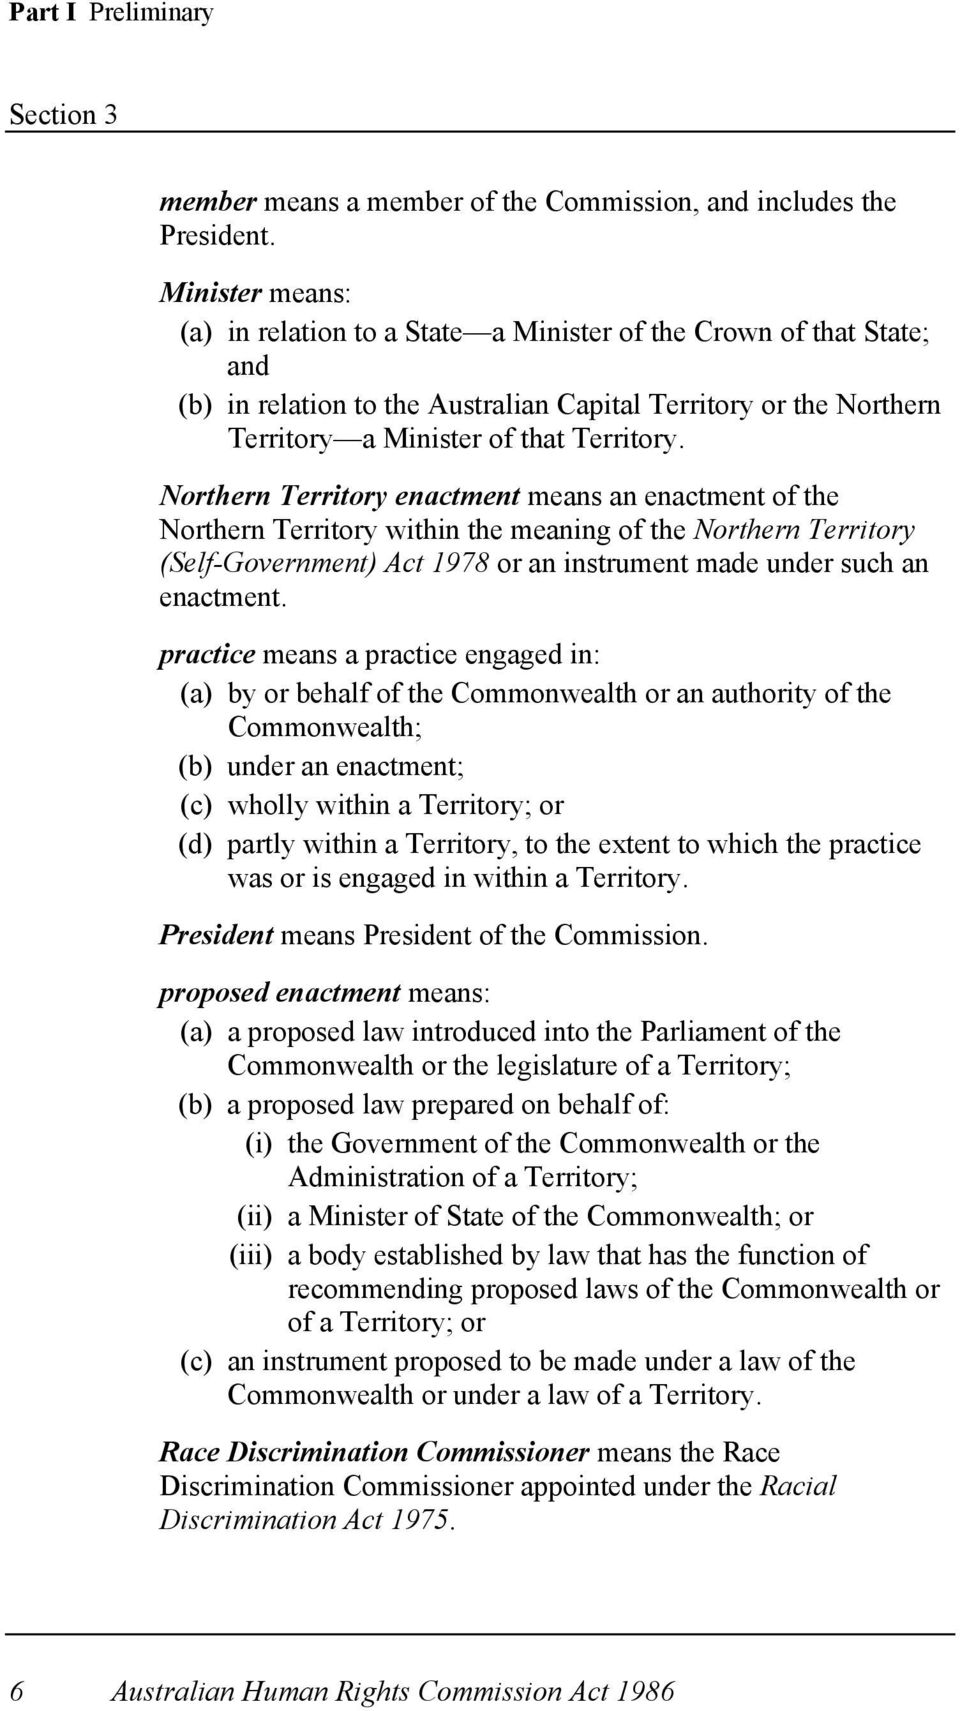 Northern Territory enactment means an enactment of the Northern Territory within the meaning of the Northern Territory (Self-Government) Act 1978 or an instrument made under such an enactment.